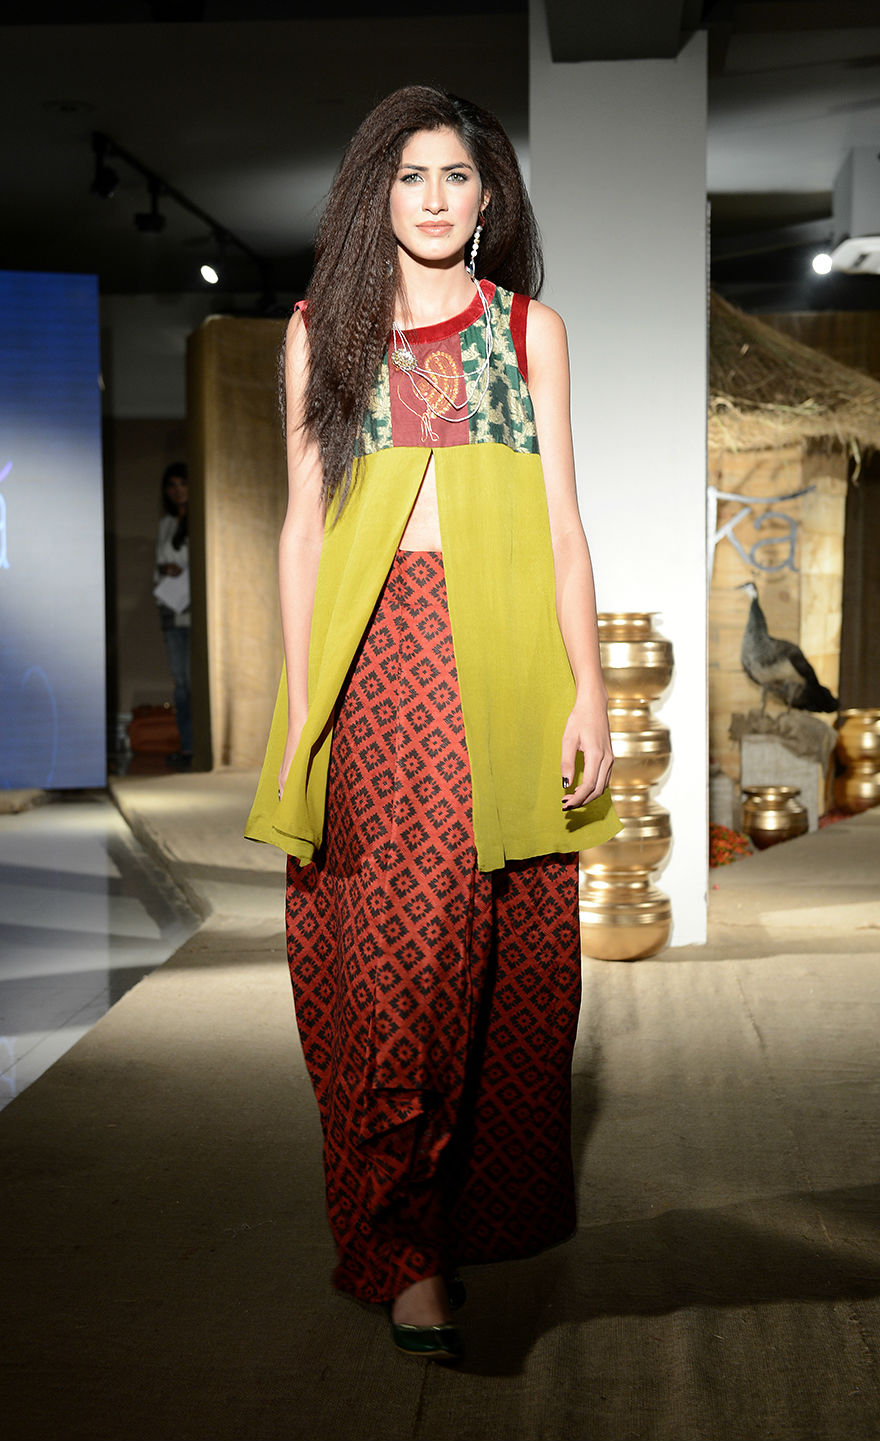 Taanka a brand dedicated to highlighting the arts and crafts of Interior Sindh launches at PFDC Fashion Active in Lahore (9).jpg